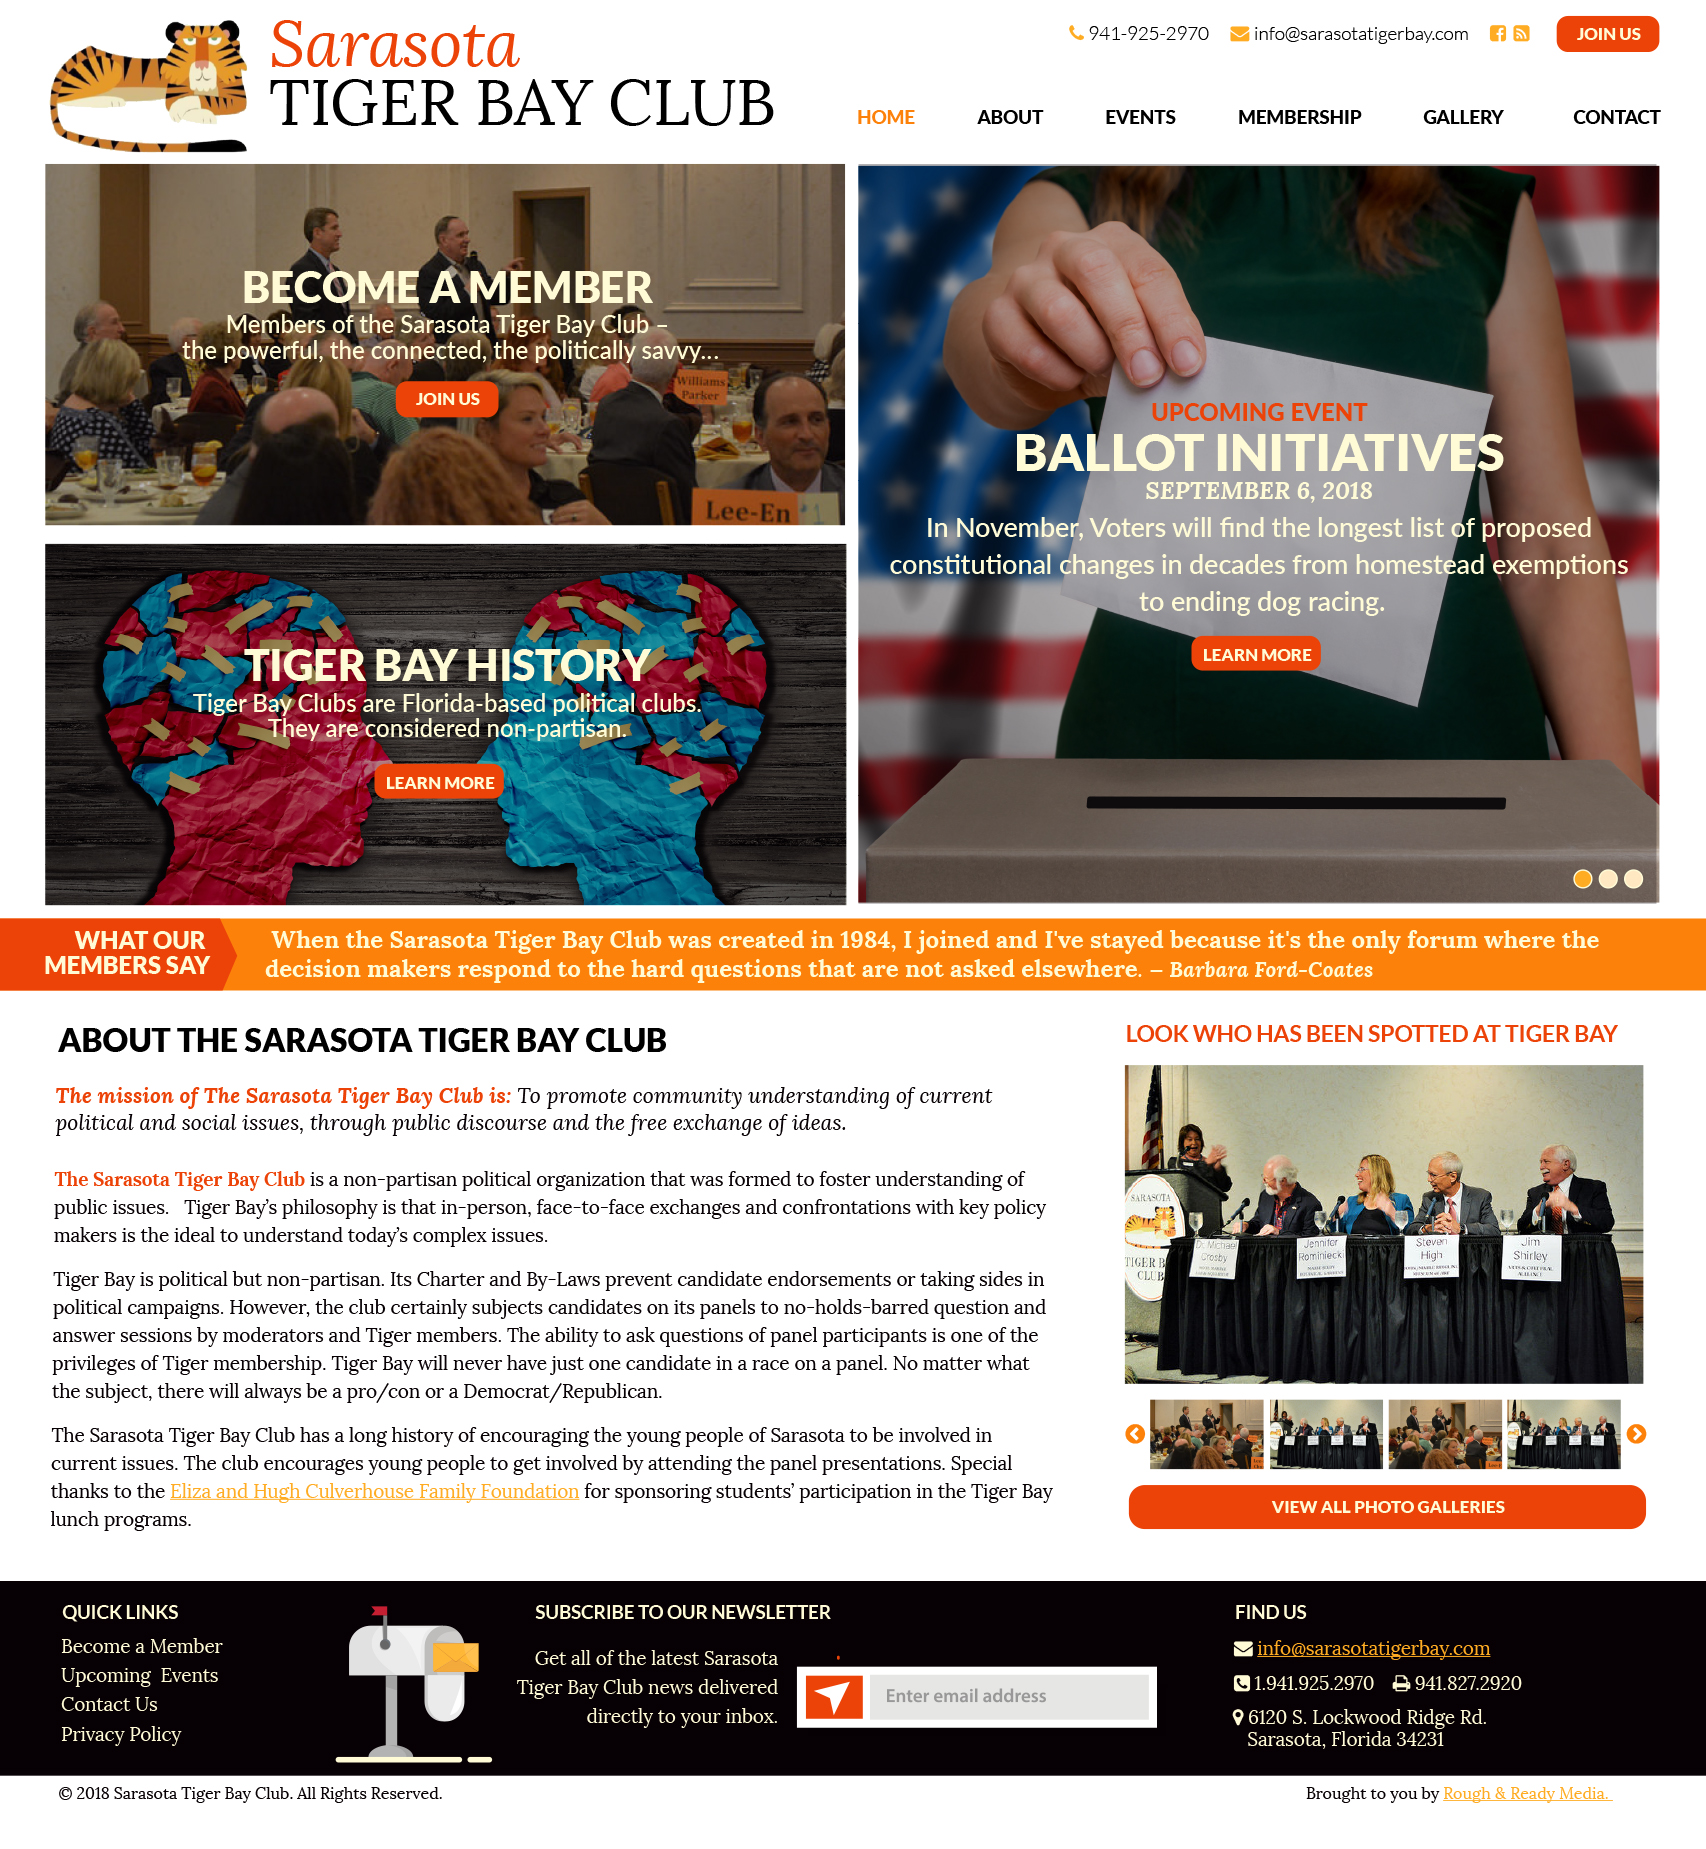 Sarasota Tiger Bay Website Design by Rough & Ready Media